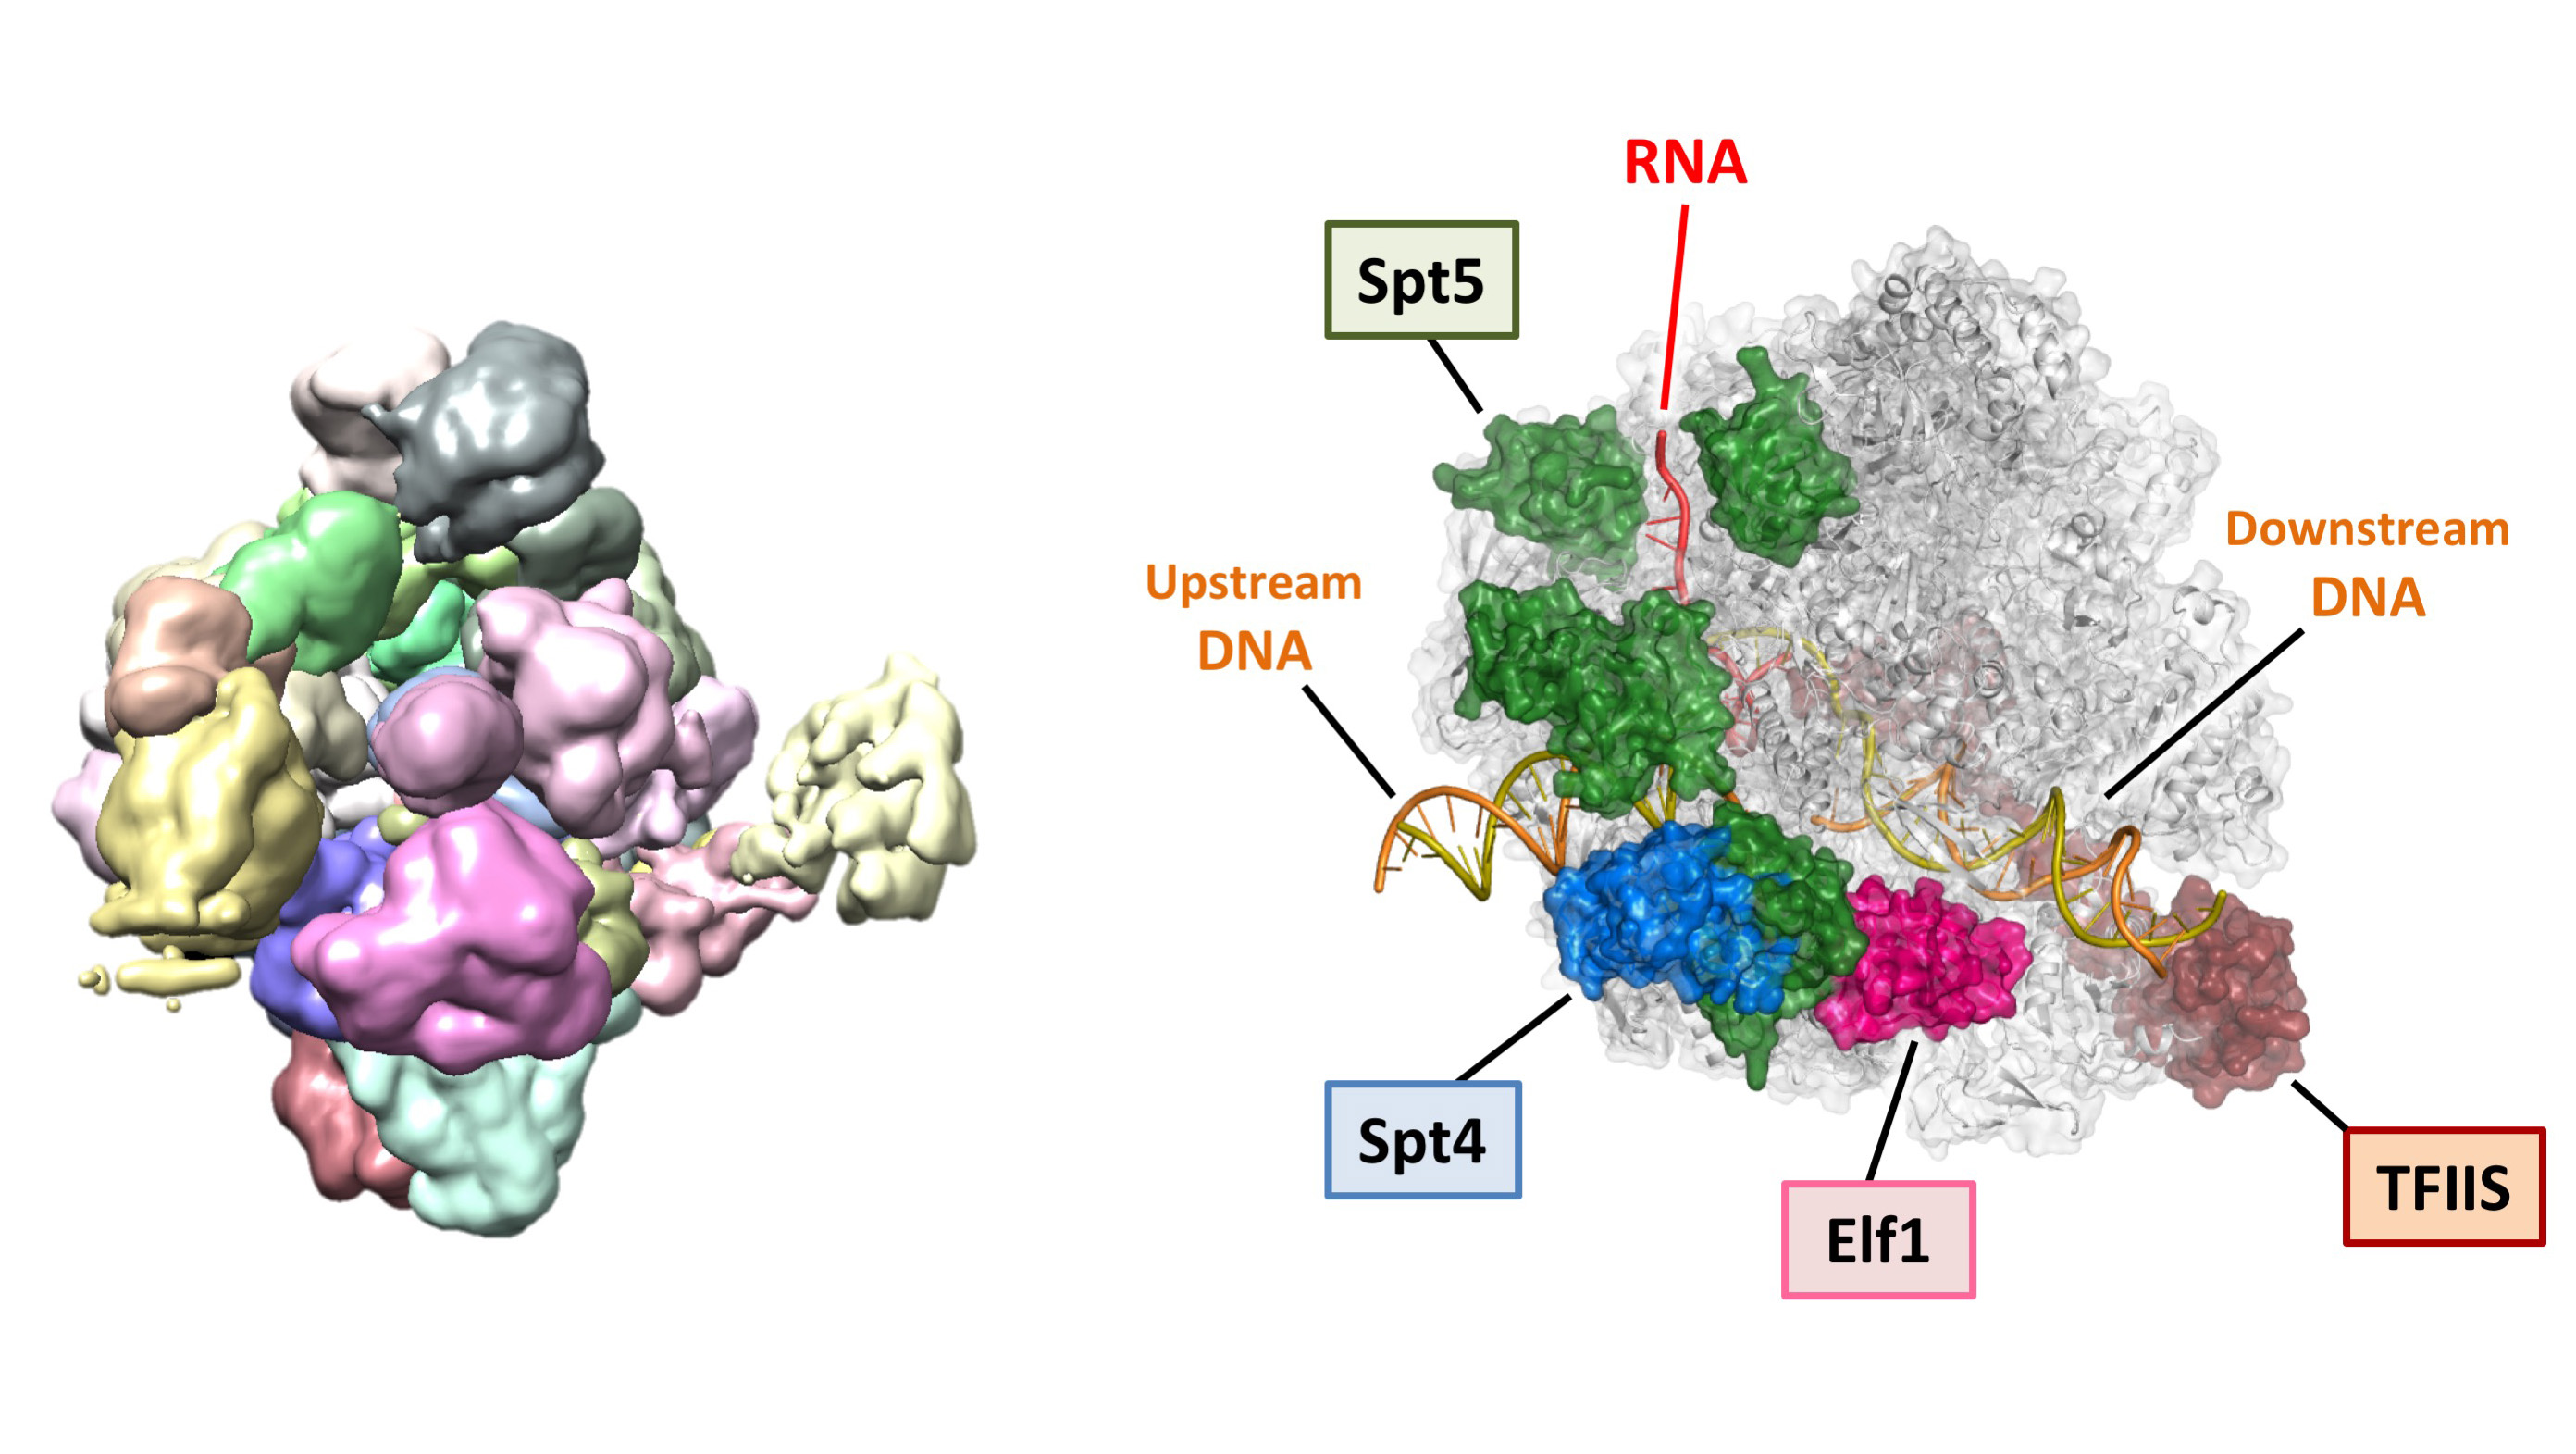 Cryo-EM density map of the RNA polymerase II elongation complex (left).  Structure of the RNA polymerase II elongation complex bound with Spt4, Spt5, Elf1, and TFIIS, revealed by cryo-EM and X-ray crystallography (right).